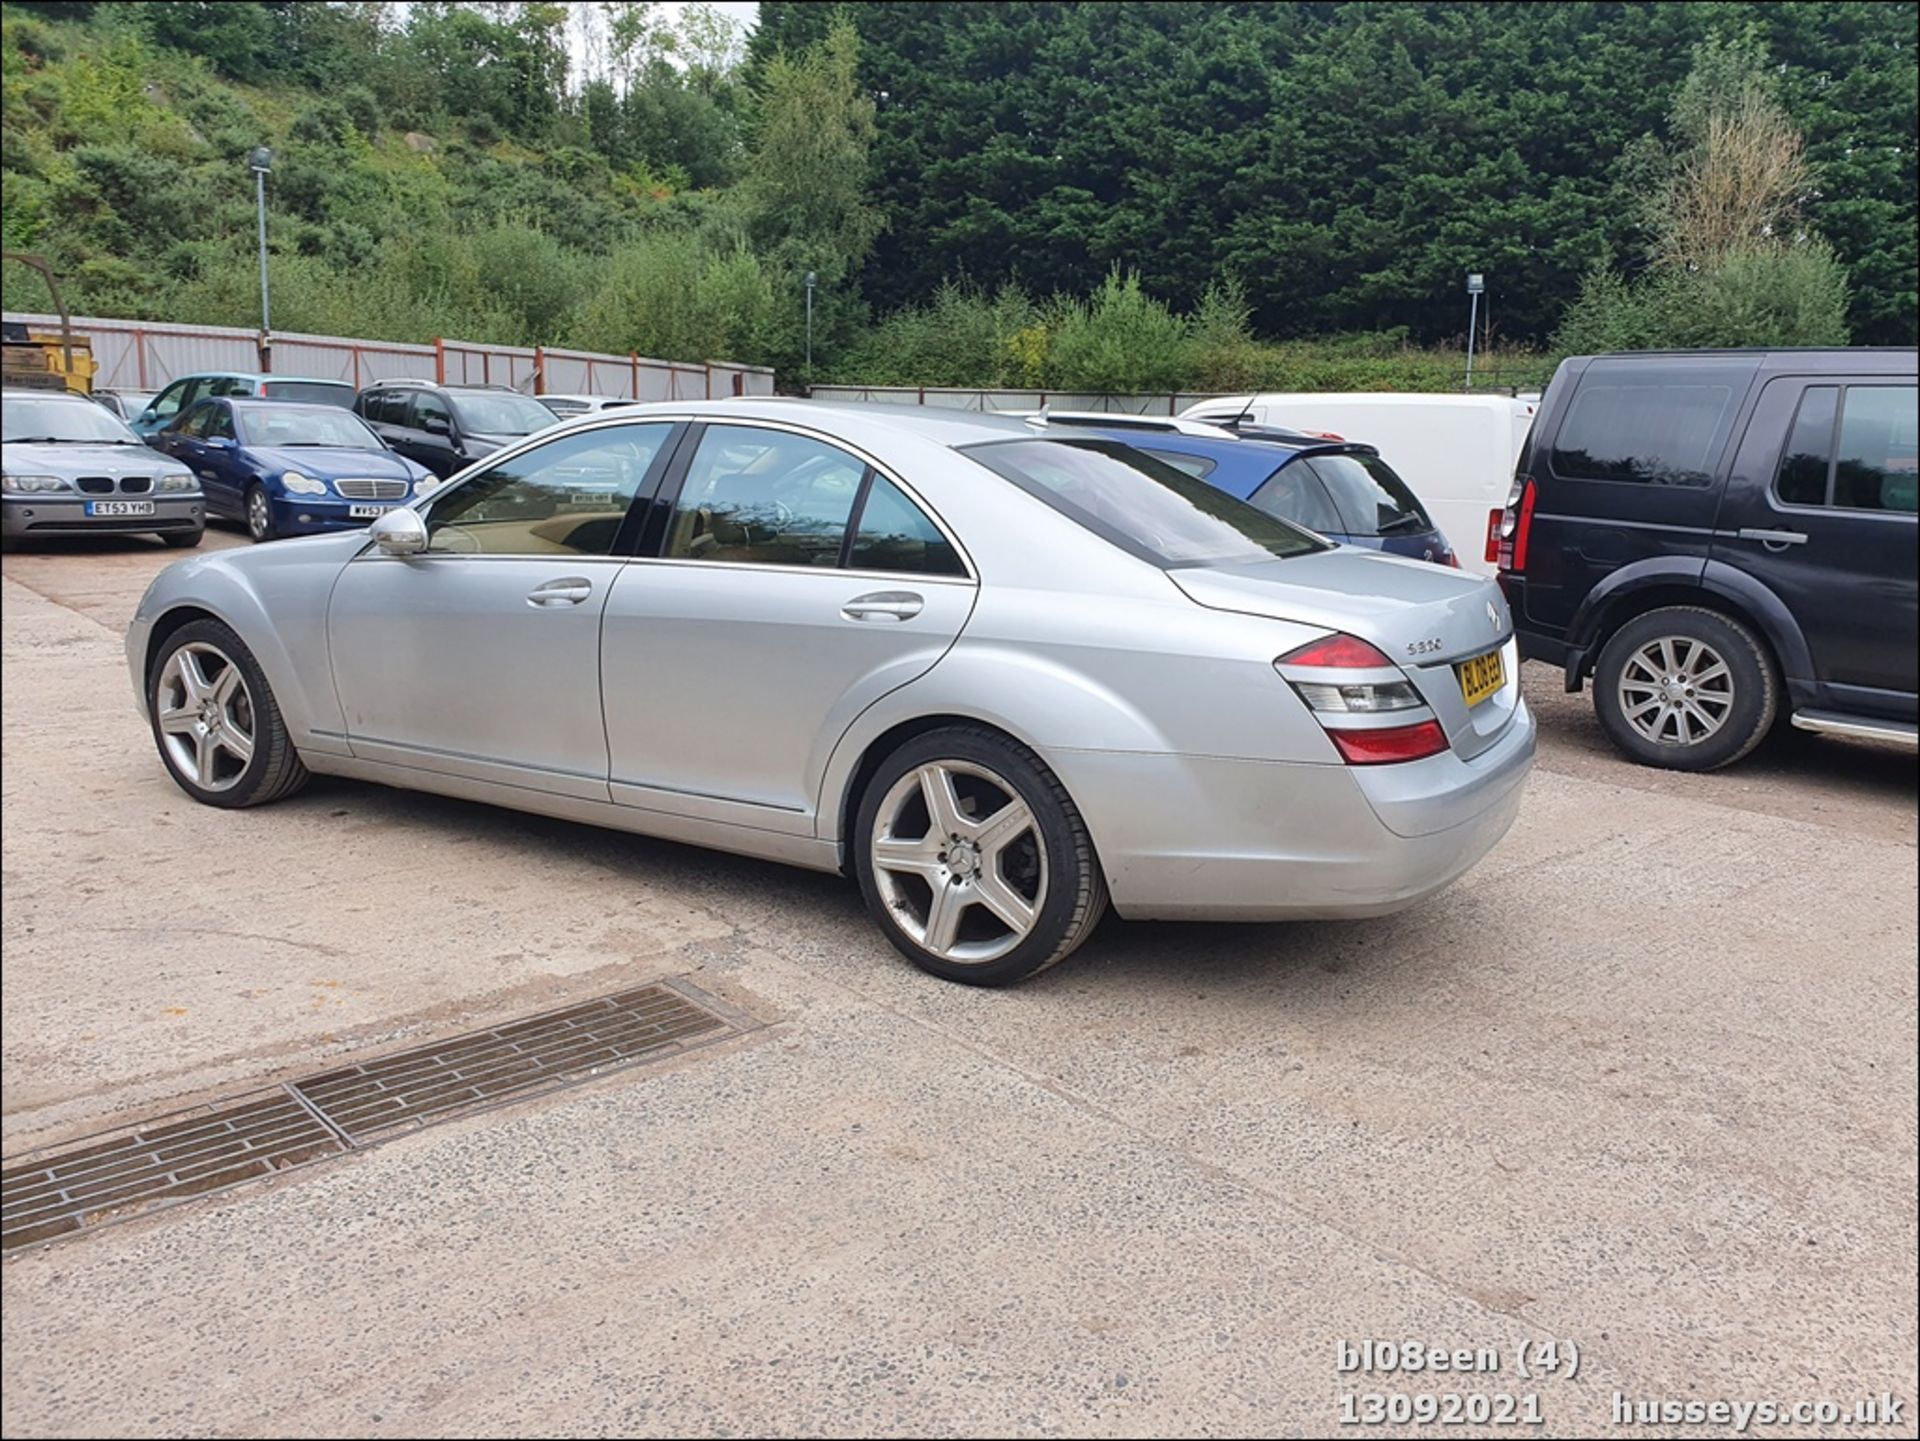 08/08 MERCEDES S320 CDI AUTO - 2987cc 4dr Saloon (Silver, 205k) - Image 4 of 16